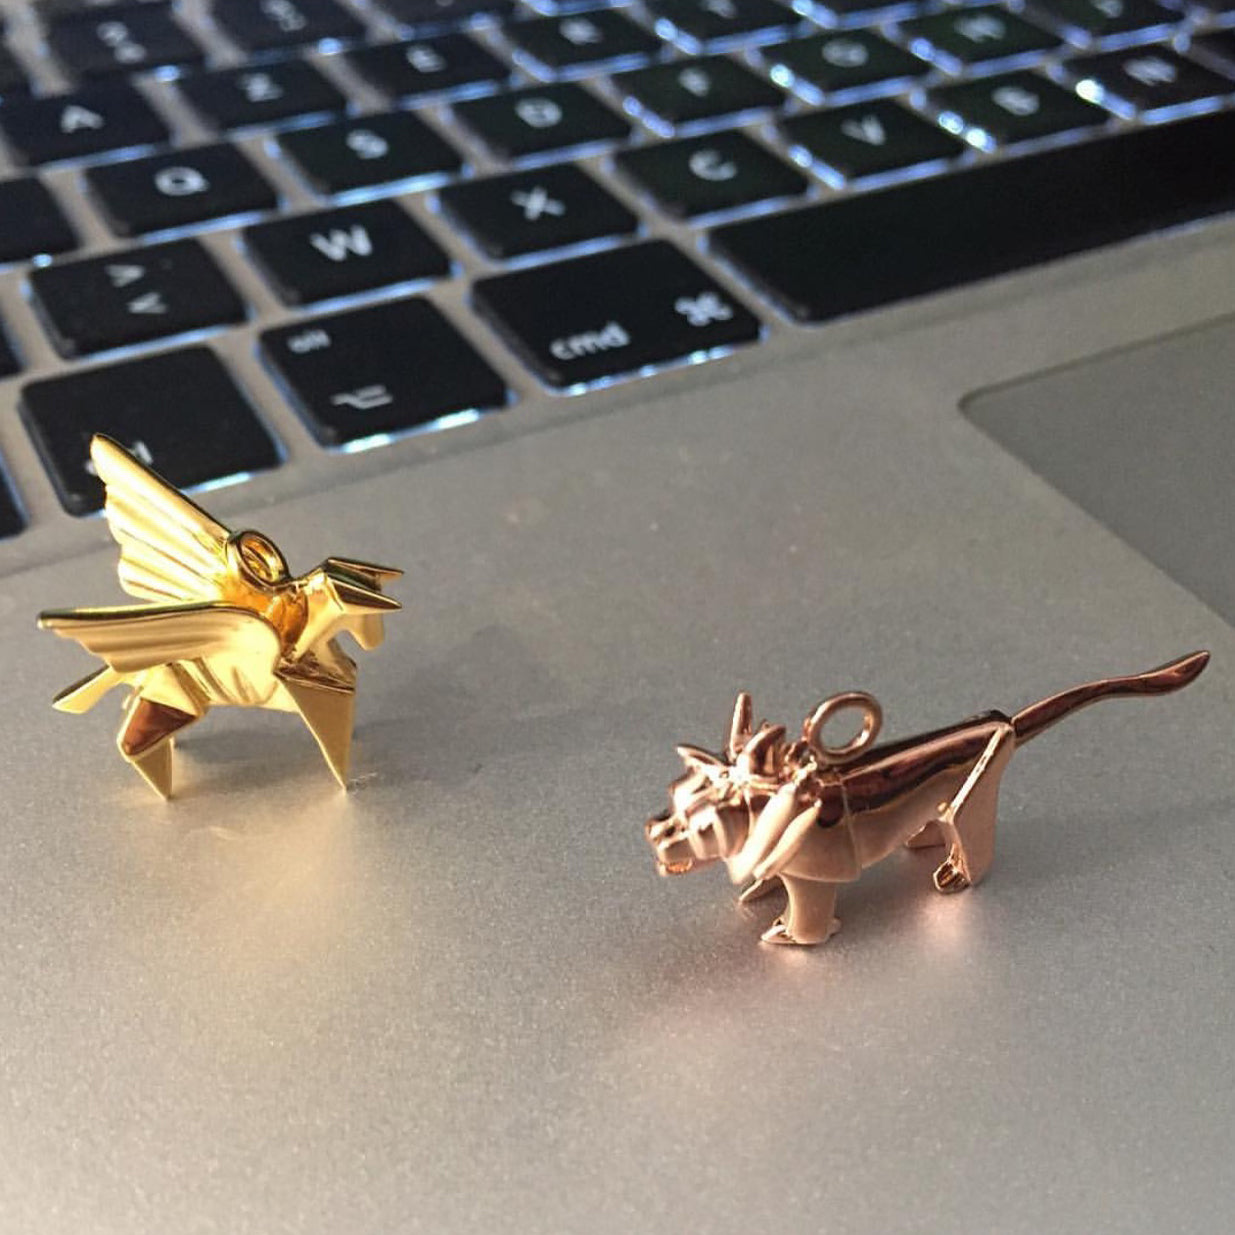 Origami Jewellery: The Endless Possibilities of Pleasure